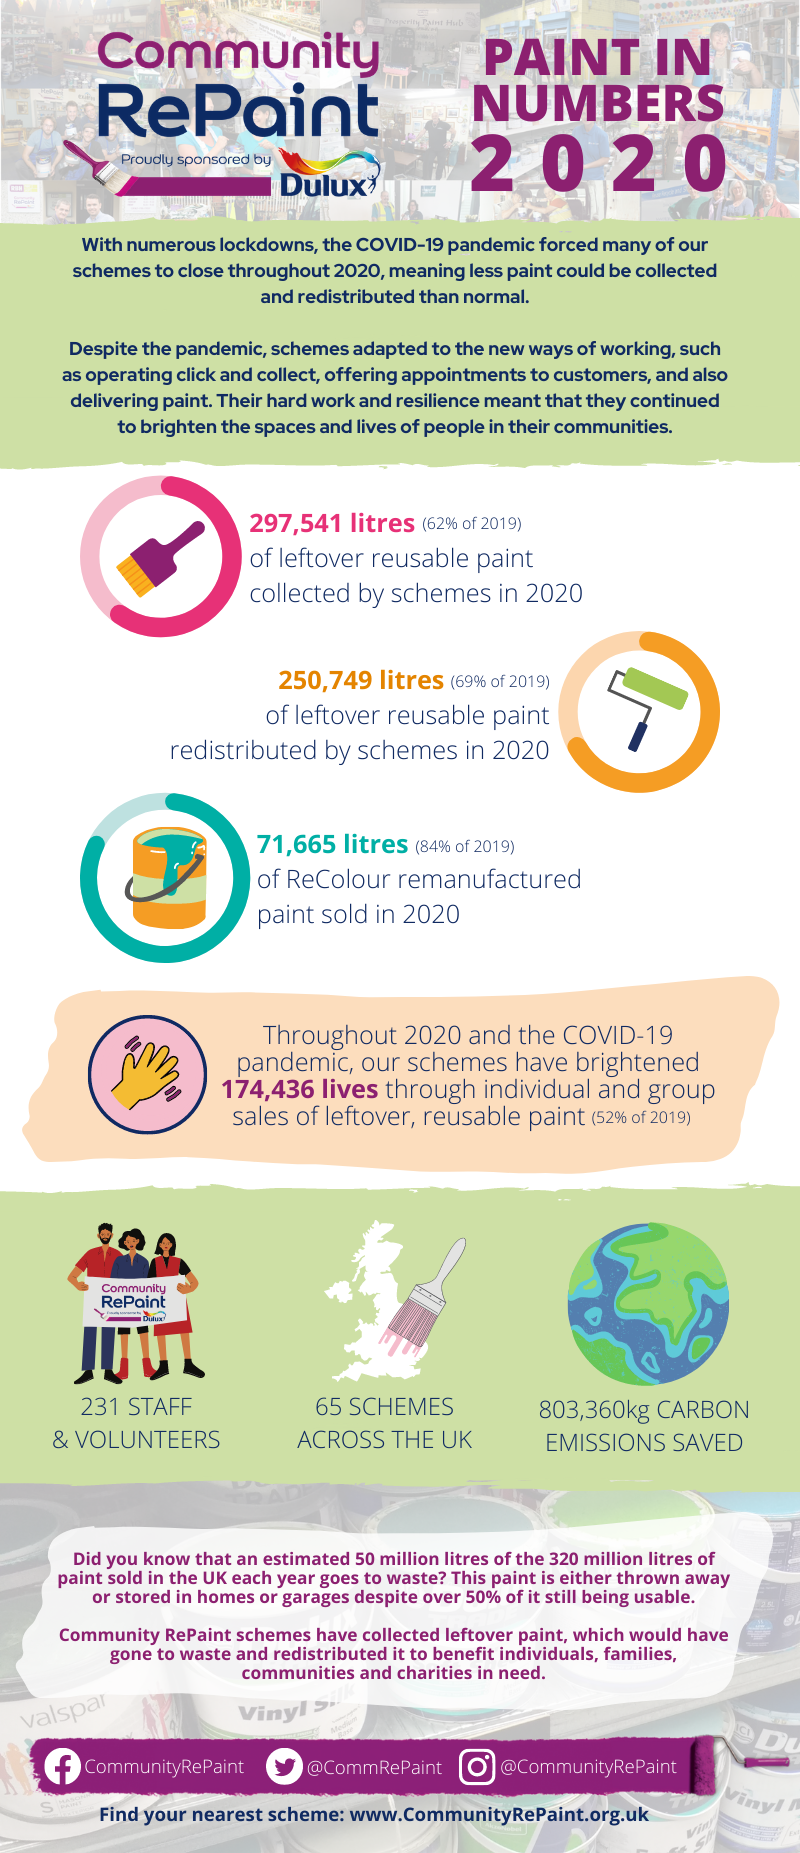 Paint in Numbers 2020 infographic detailing that 297,541 litres of leftover reusable paint were collected by schemes in 2020; 250,749 litres of leftover reusuable paint were redistributed by schemes in 2020; 71,665 litres of ReCOlour remanufactured paint sold in 2020.